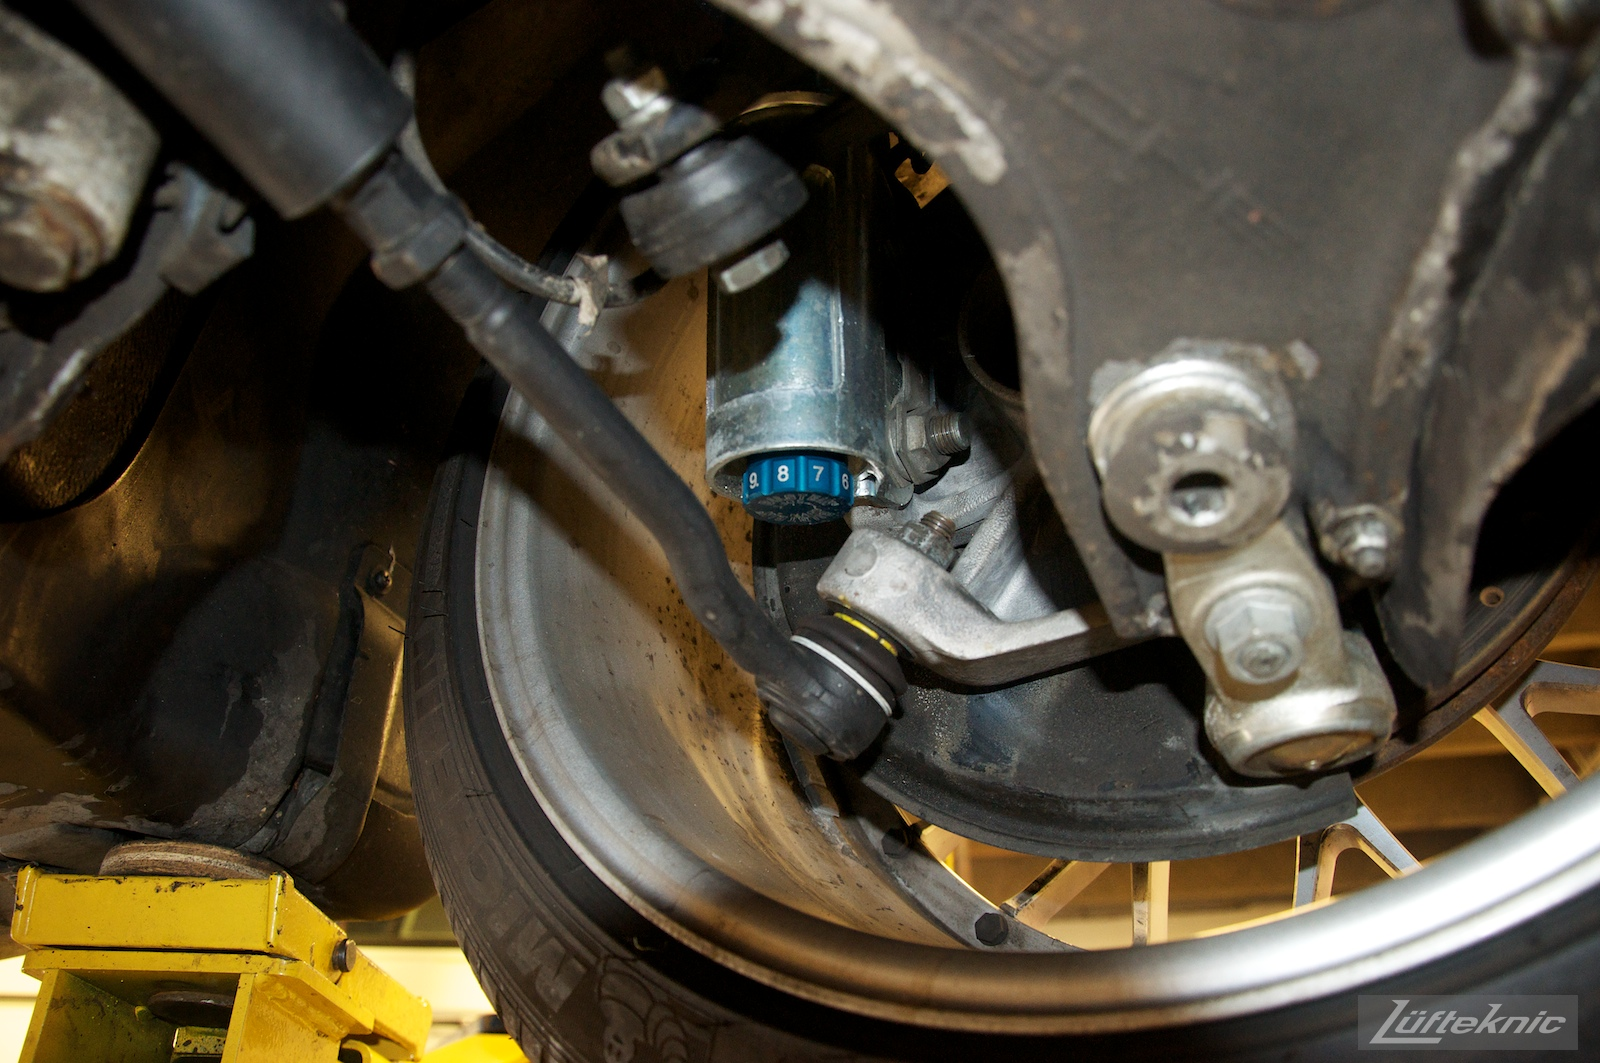 Suspension detail shots with RSR uprights on a 993 Turbo from underneath.